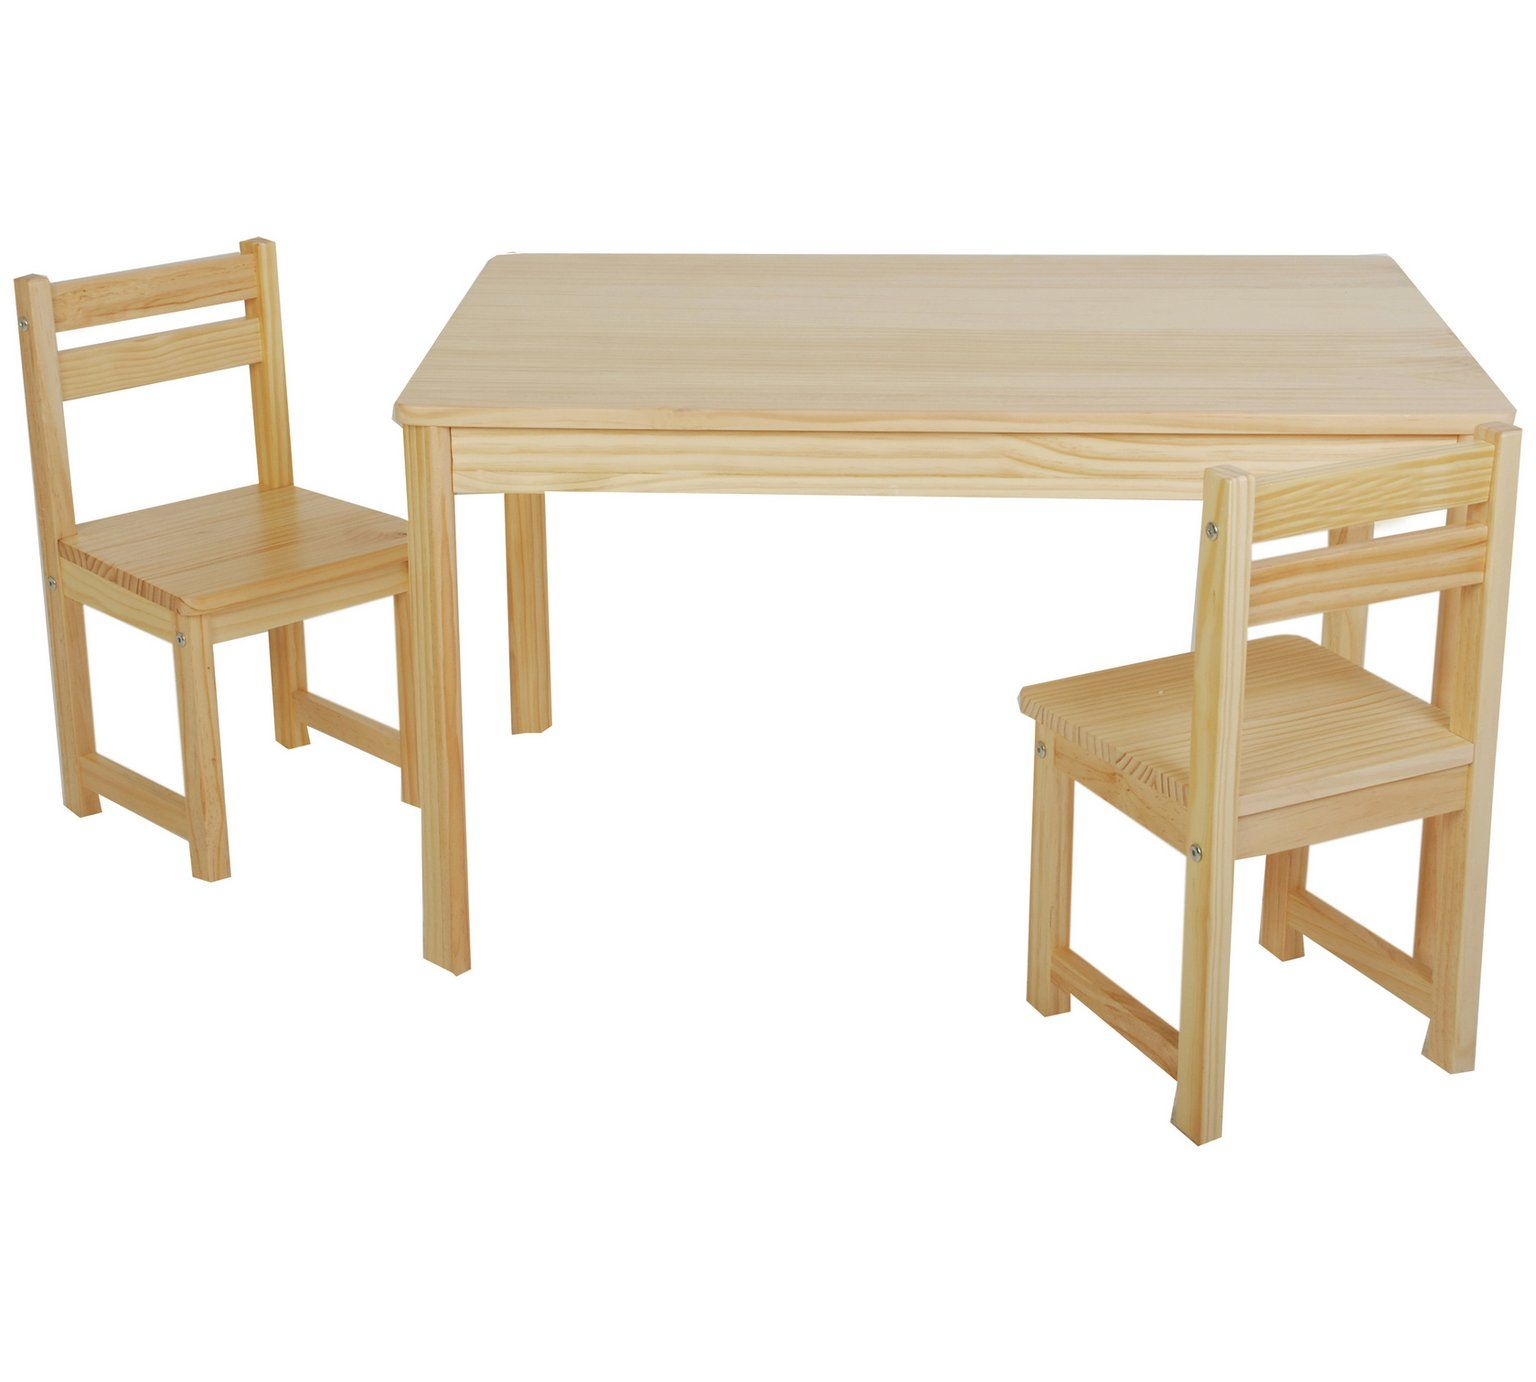 Buy Tikk Tokk Little Boss Nursery Table and Chairs Set Natural